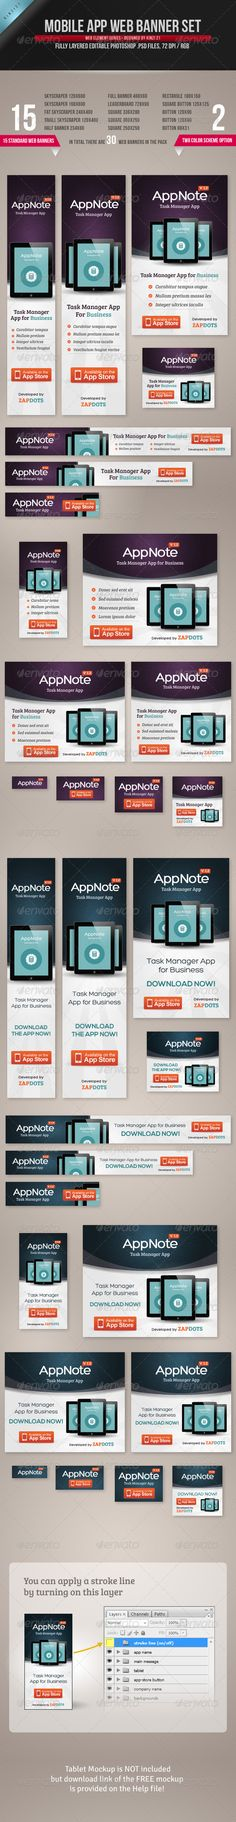 Mobile App Web Banner Set - A pack of web banner templates ideal for mobile app launch promotion or marketing on website.More info on these banner templates and how to get the sourcefiles of these templates can be found on Graphic River,     http://graphicriver.net/item/mobile-app-web-banner-set/4543390?r=kinzi21